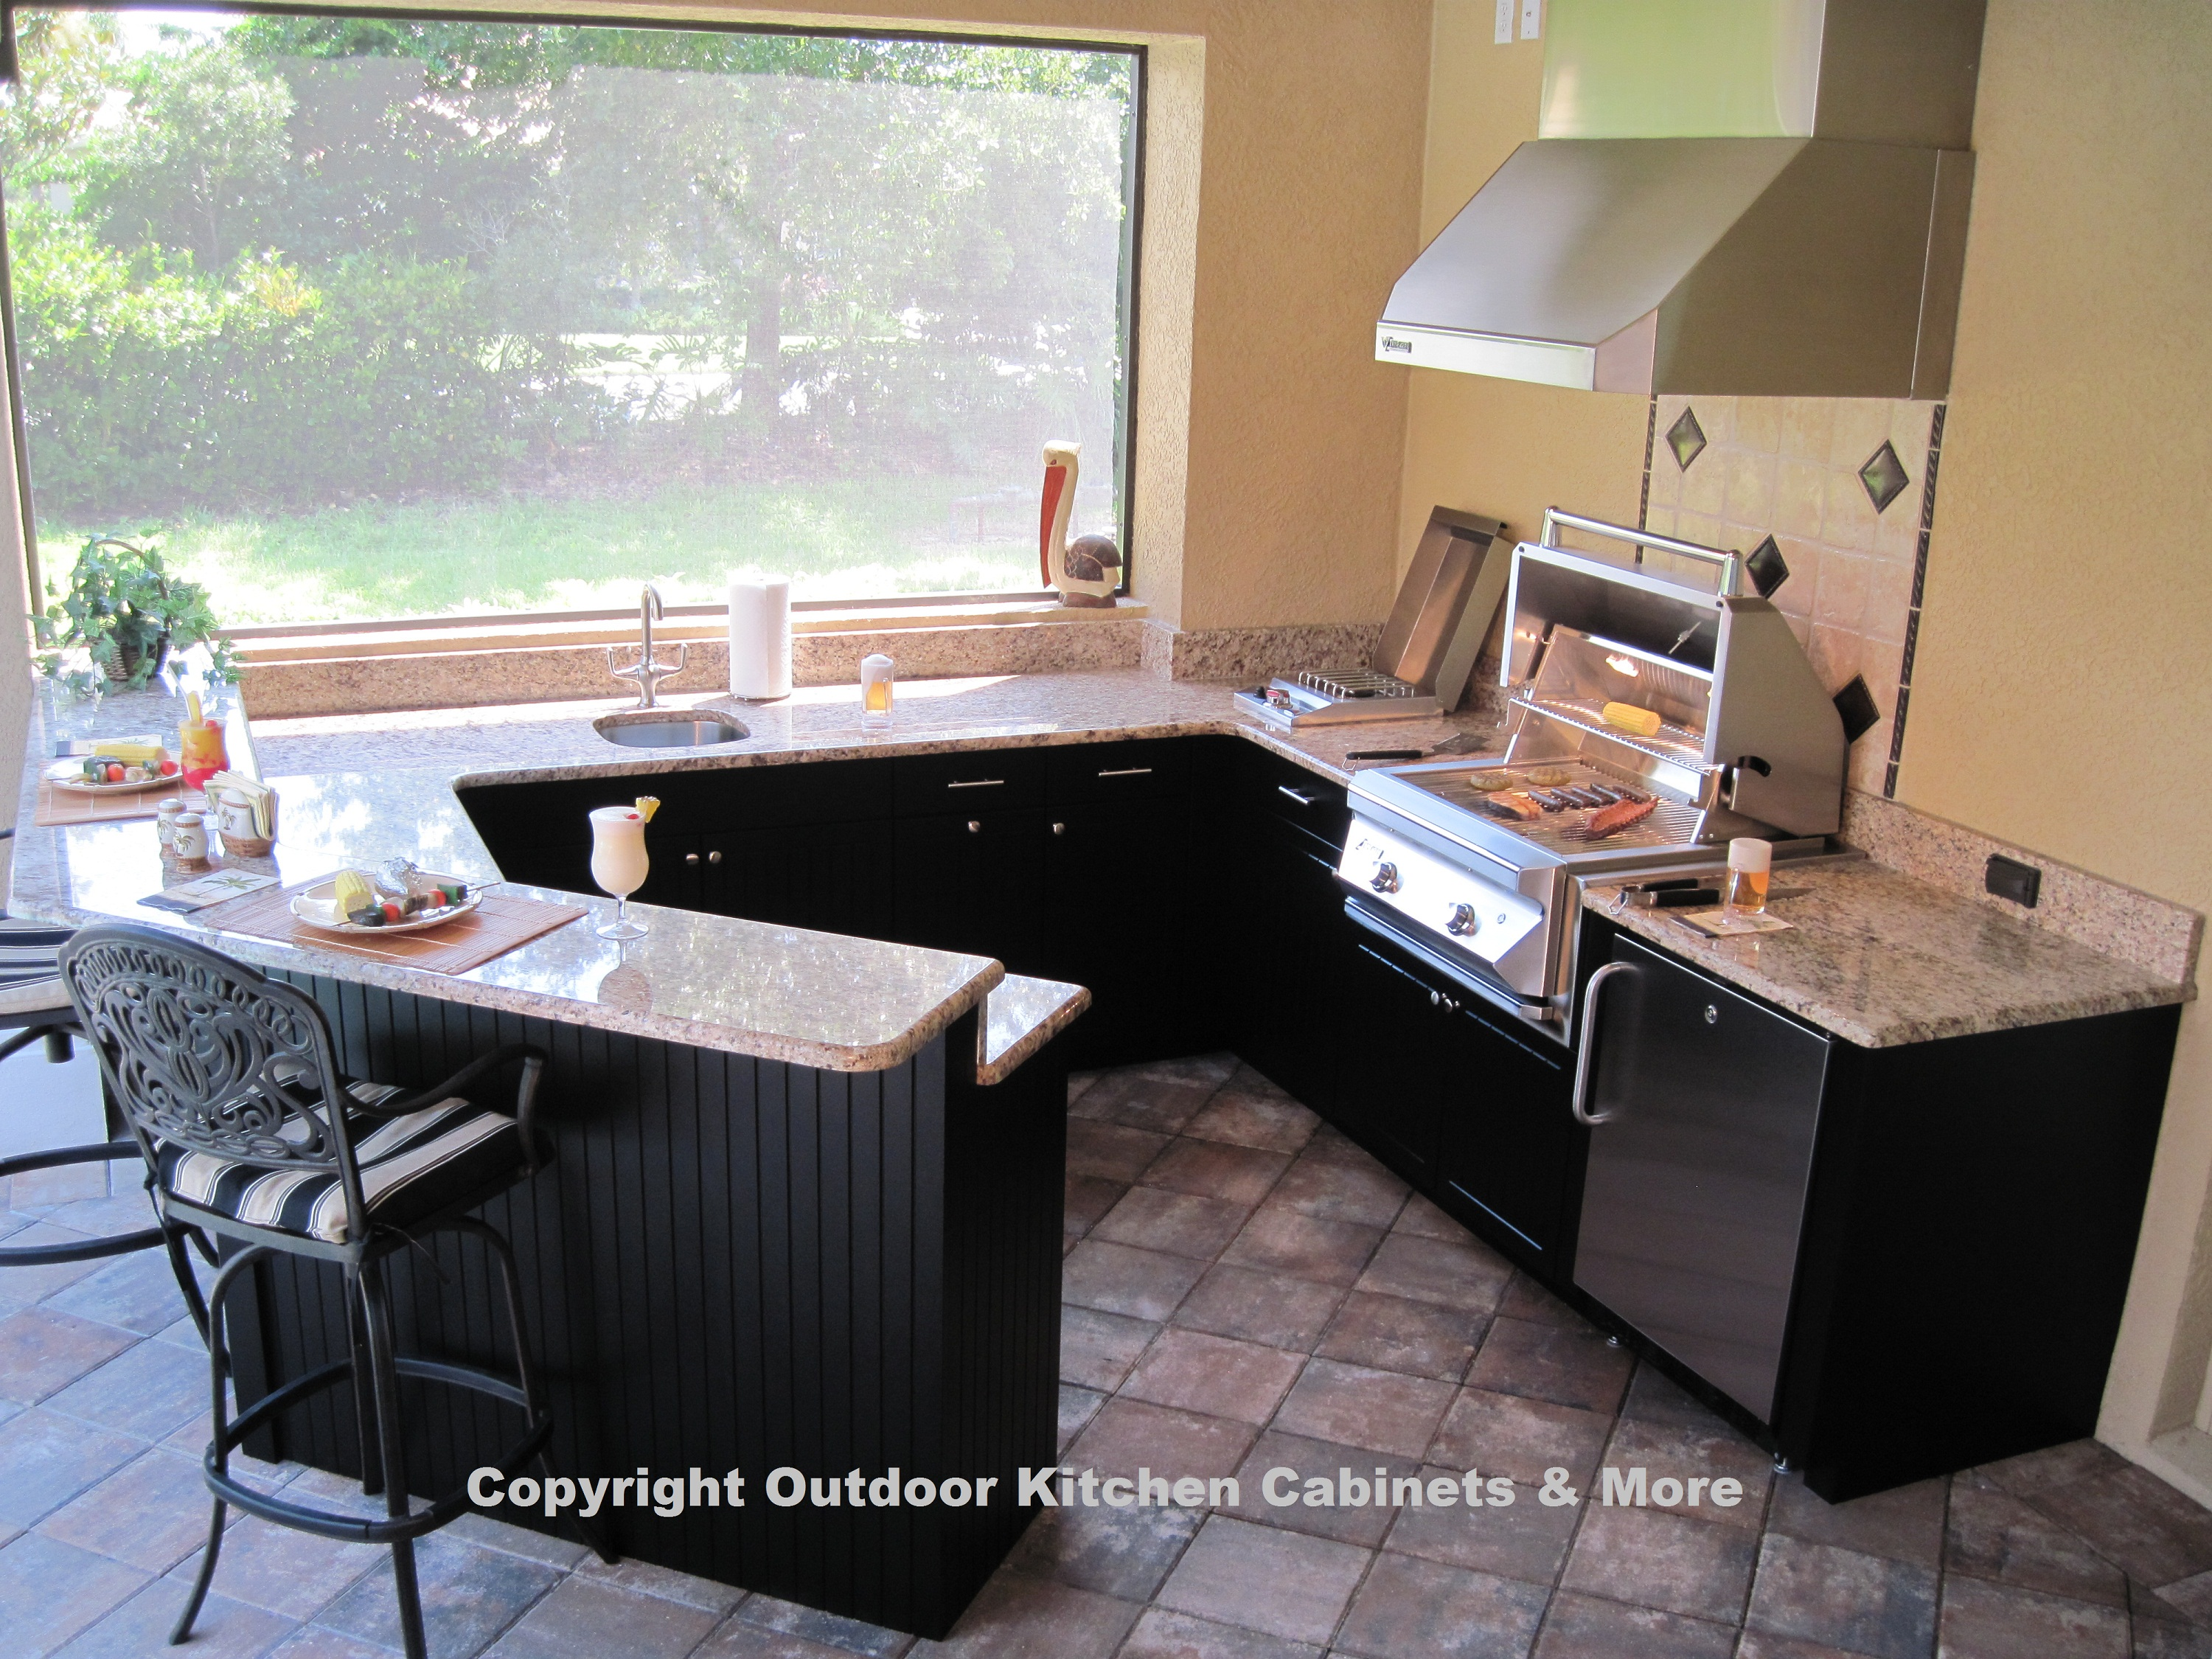 Outdoor Kitchen Furniture Outdoor Kitchen Cabinets More Quality Outdoor Kitchen Cabinets